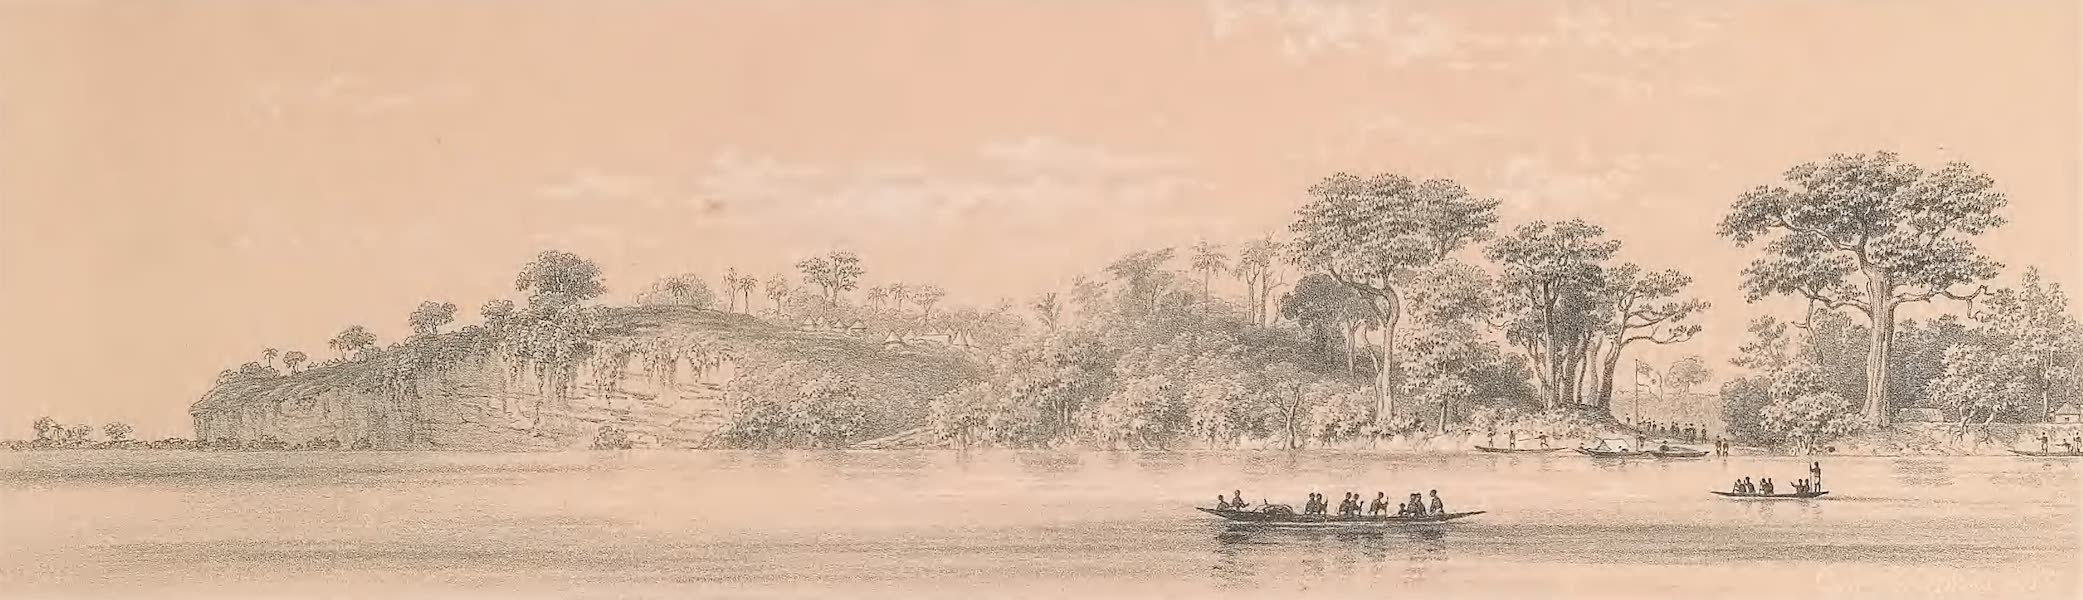 Picturesque Views on the River Niger - Cliffs at Attah (1840)